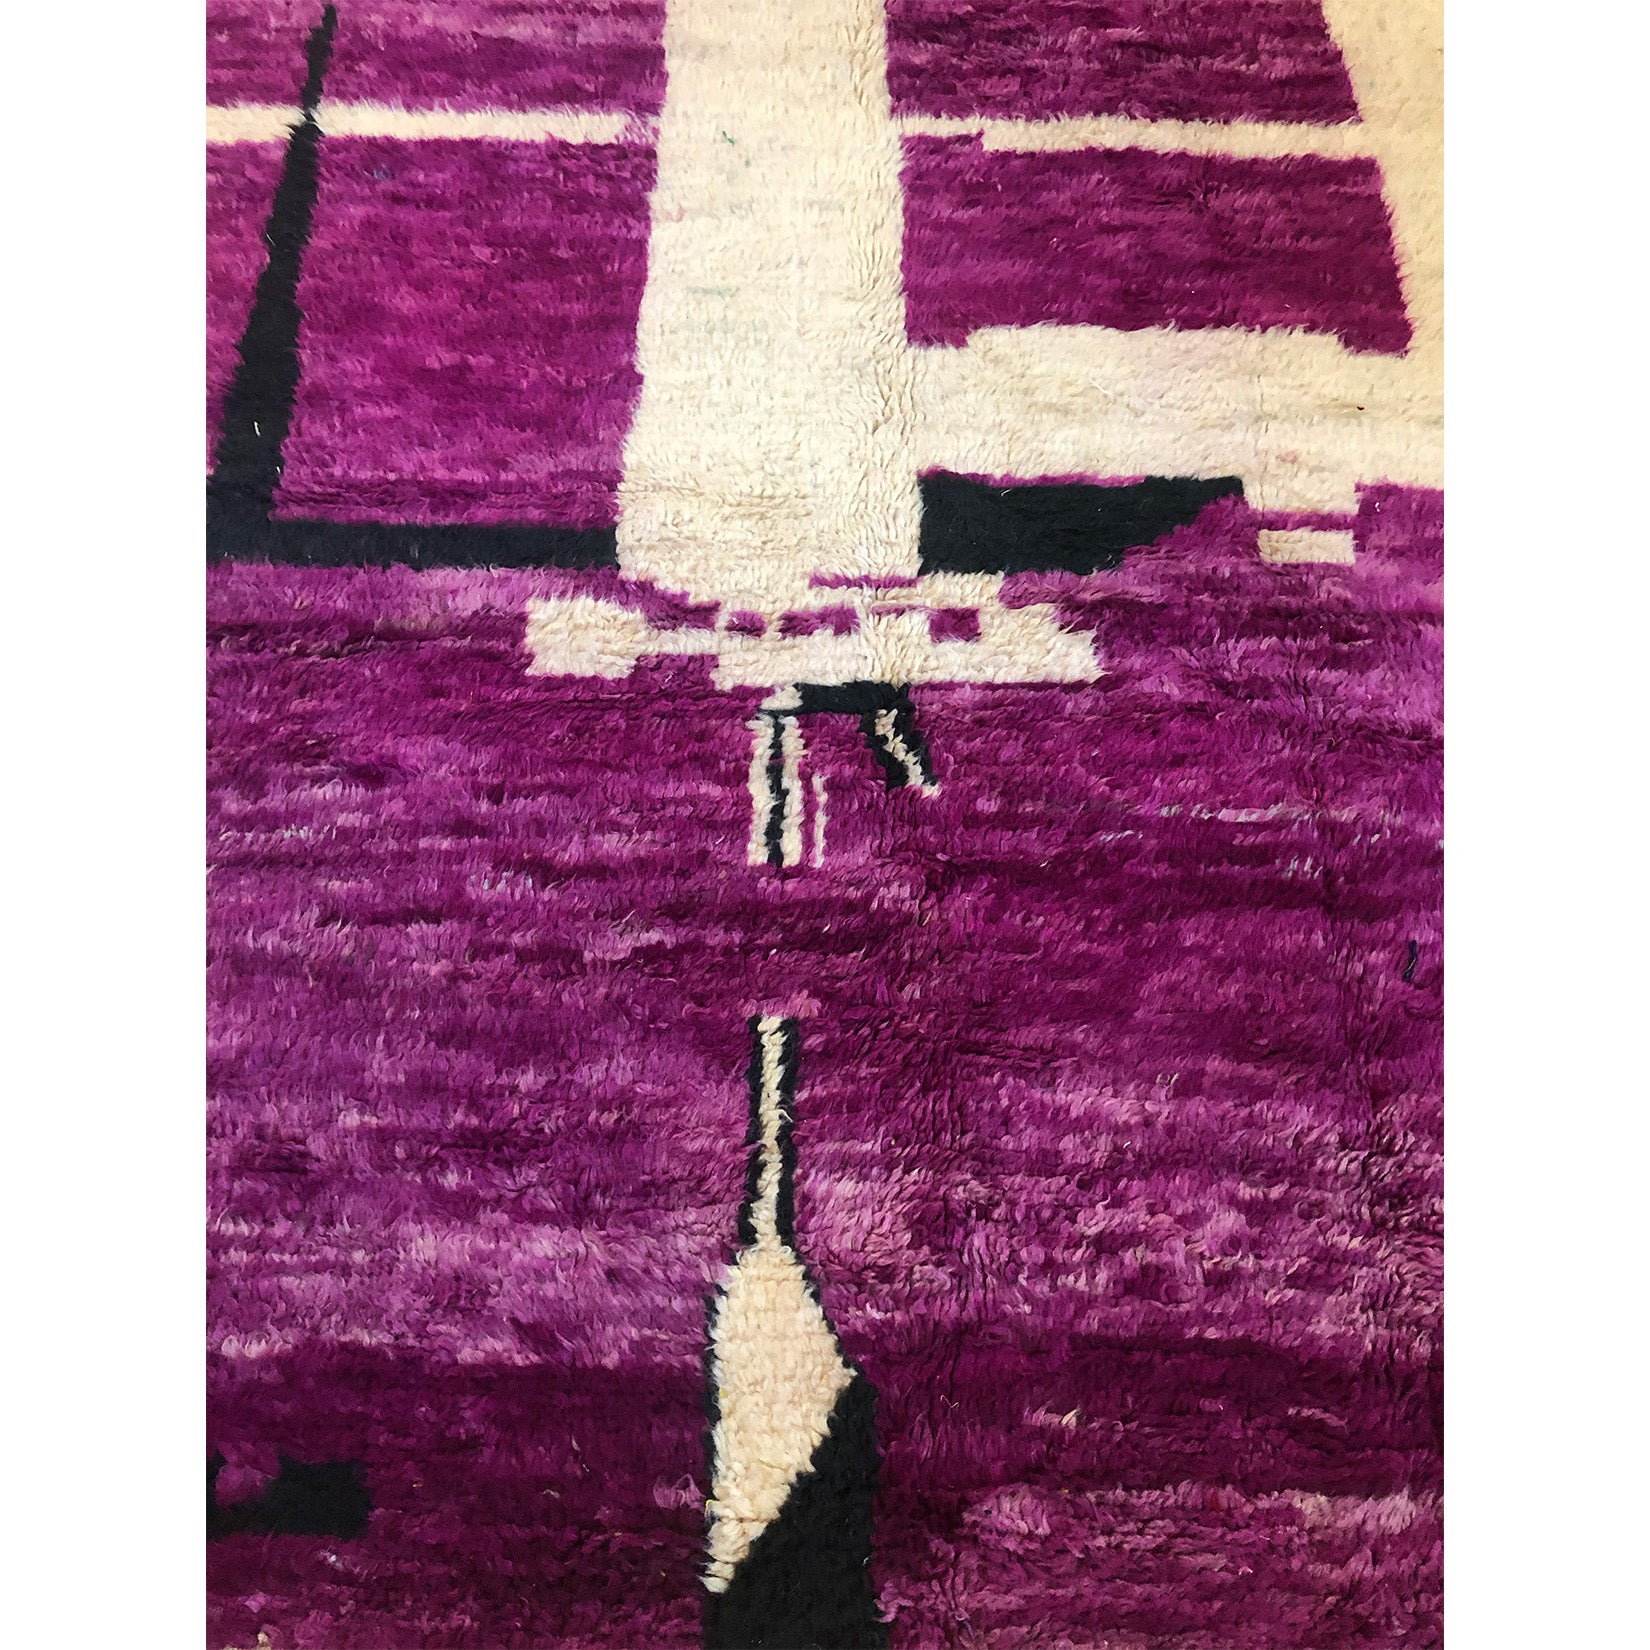 Vintage bohemian purple and black berber carpet - Kantara | Moroccan Rugs